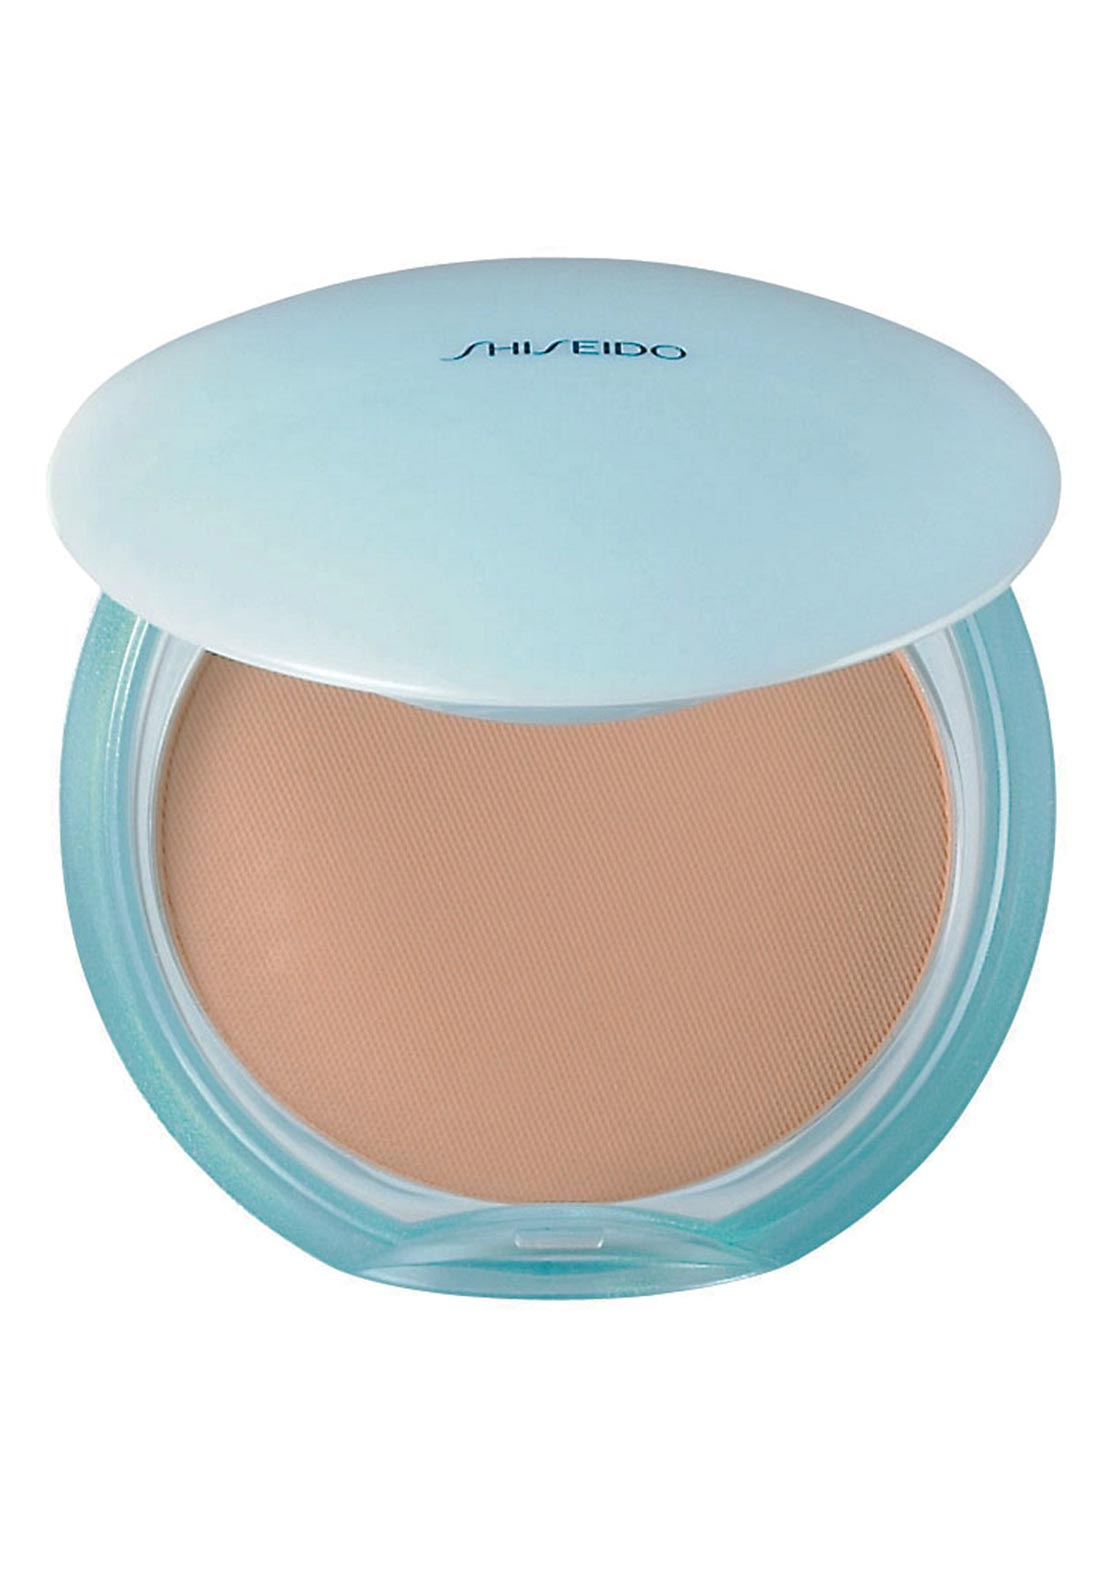 Shiseido Pureness Matifying Compact Oil Free Foundation, 11g